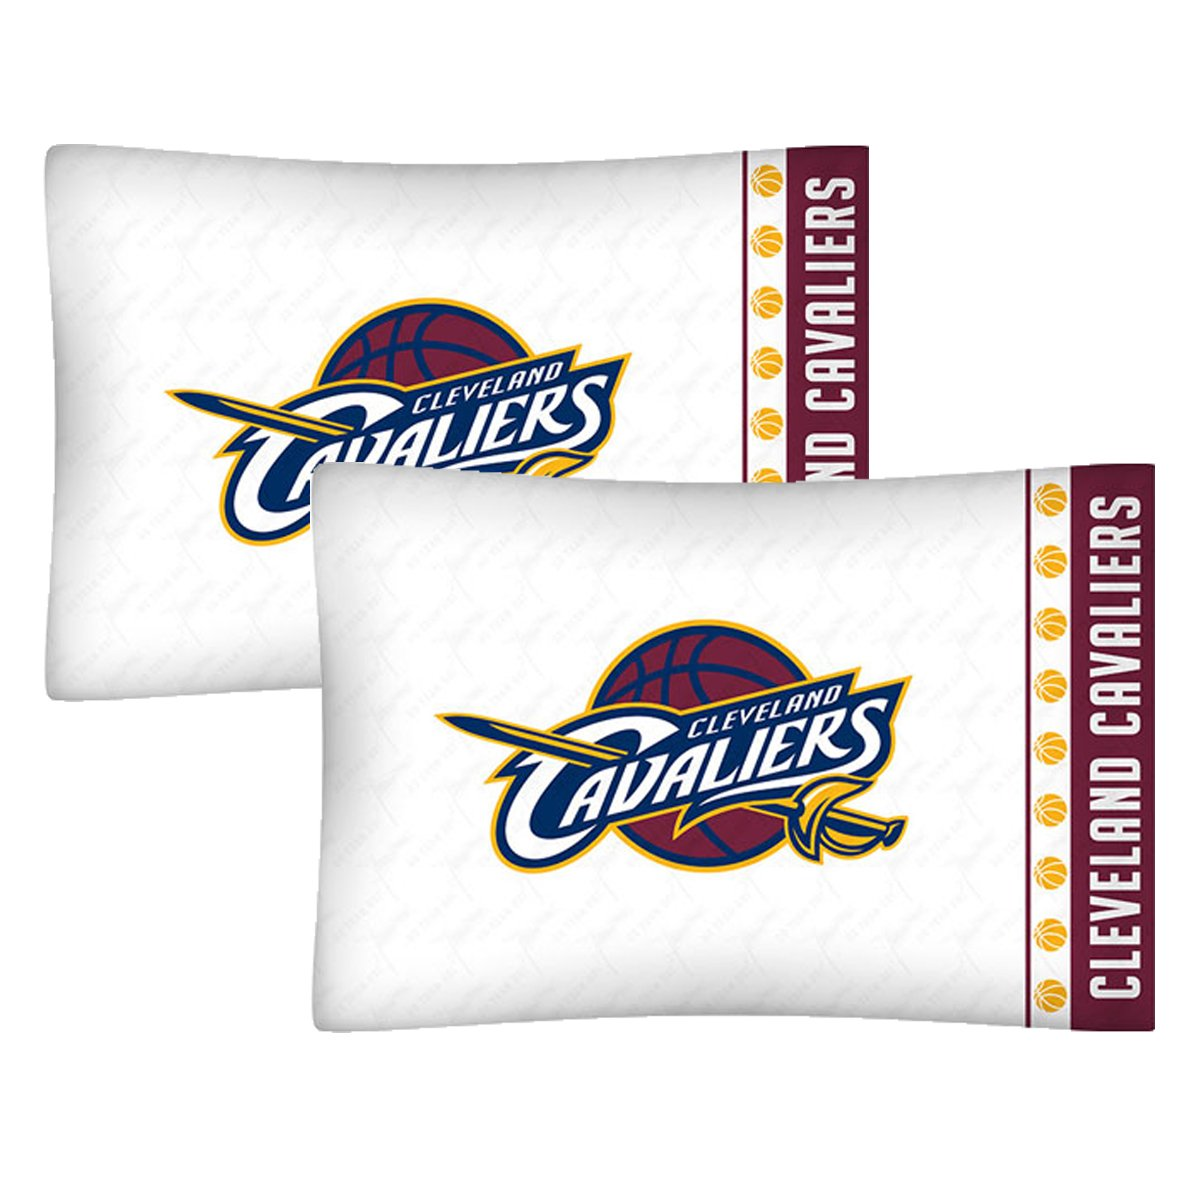 Set of 2 NBA Cleveland Cavaliers Pillowcases Basketball Team Logo Bedding Pillow Covers by NBA